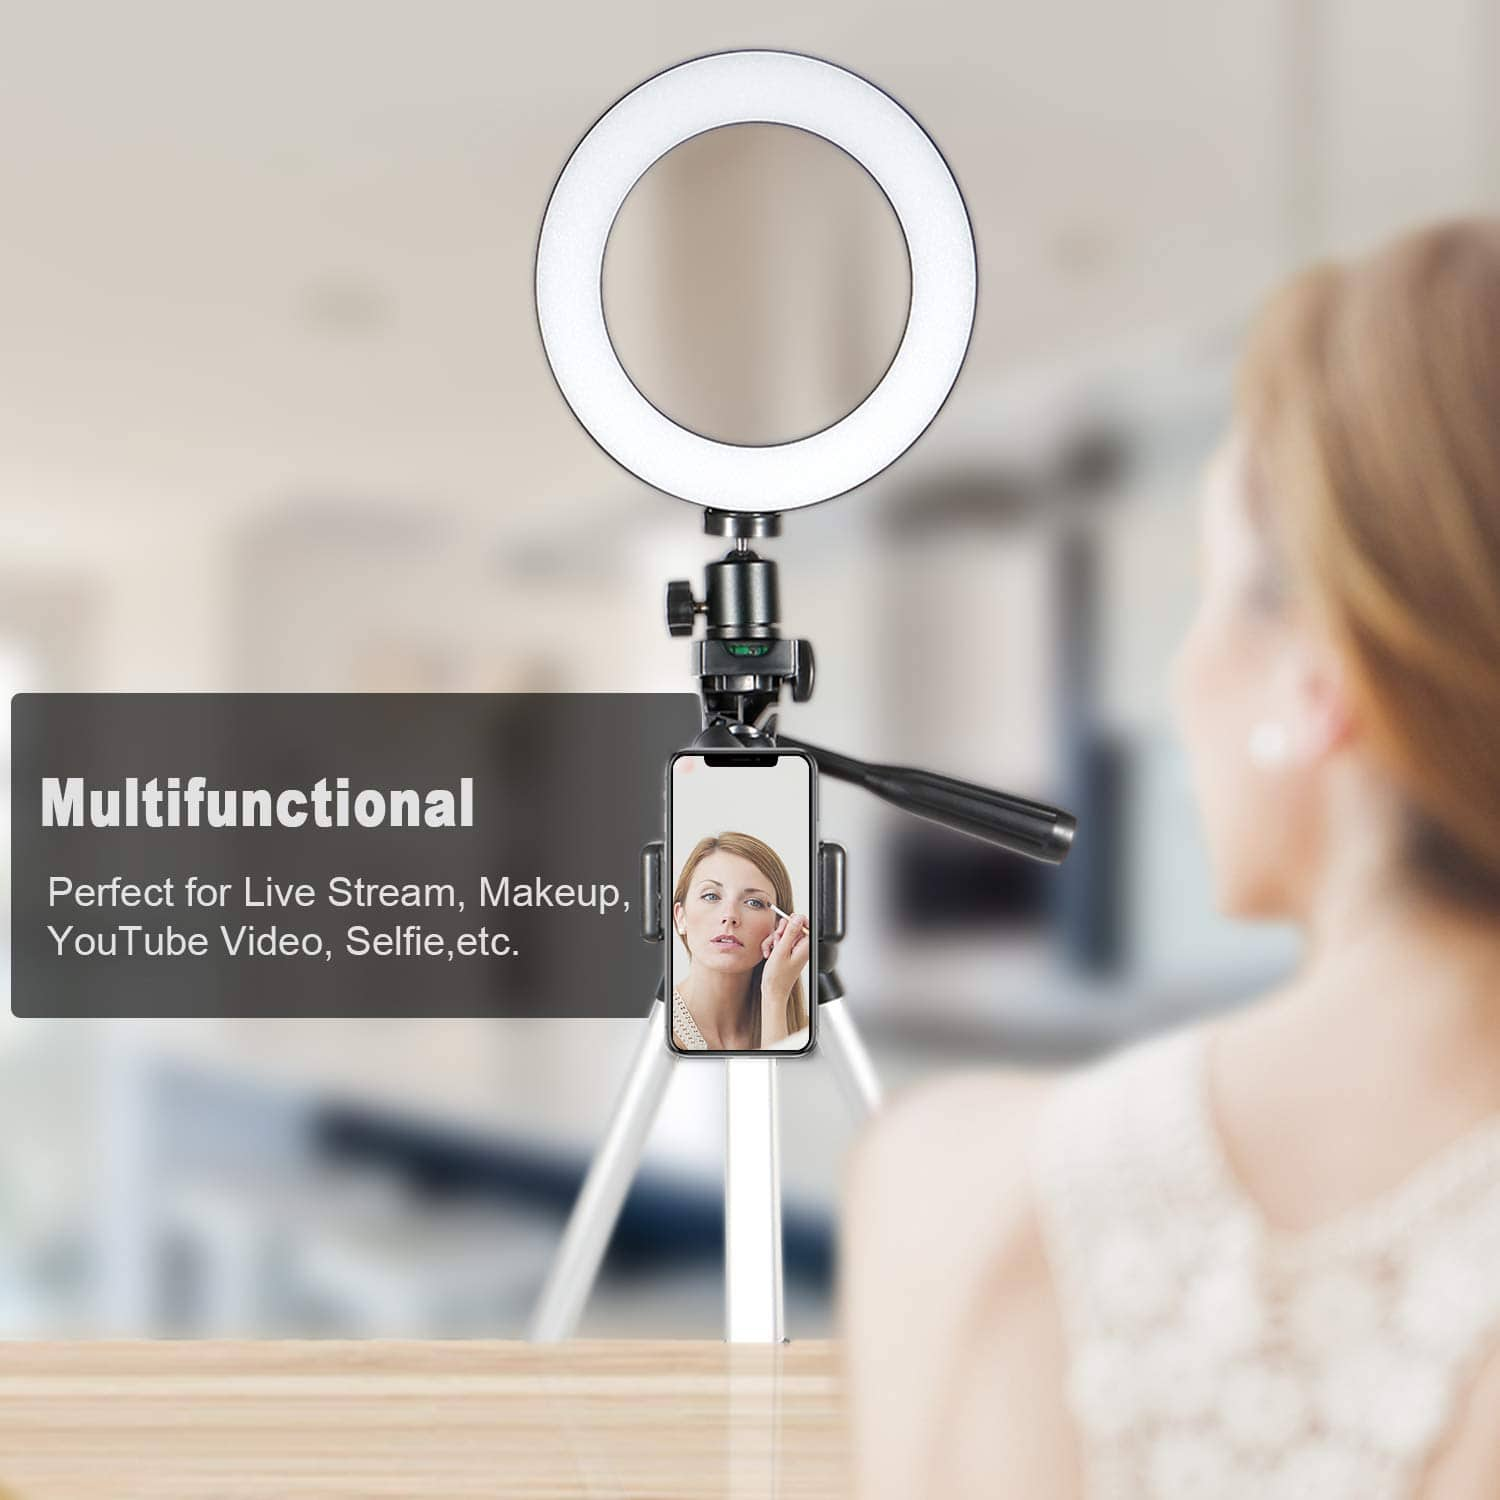 GLCON Selfie Ring Light with Tripod Stand for Live Stream-LED Ring Light, $27